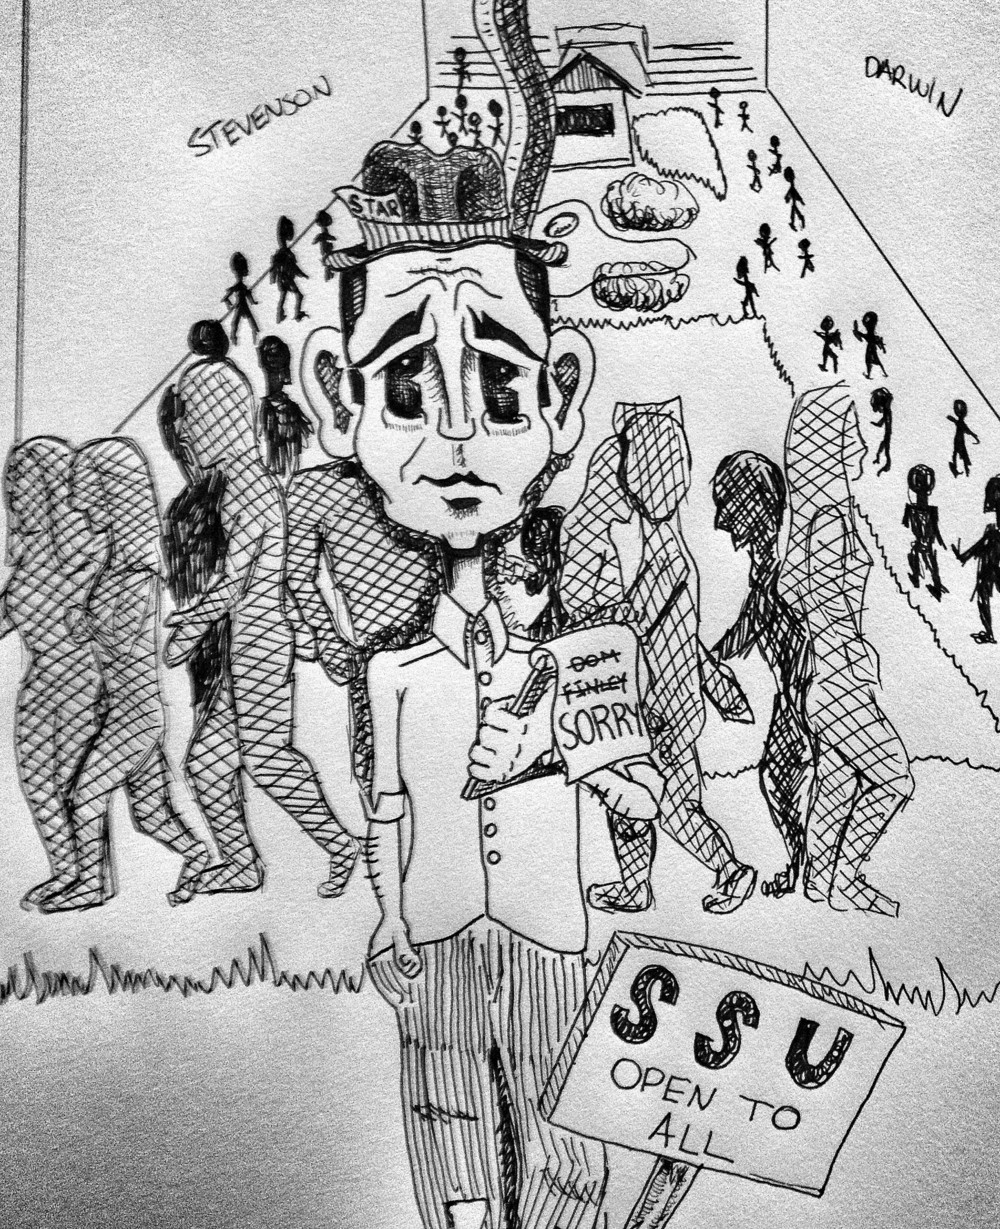 STAR // Garett Knight    The editorial board at the Sonoma State STAR apologizes for the false claims made in a recent student spotlight article, but we take this incident as an important lesson for us to be aware of who we think we surround ourselves with.